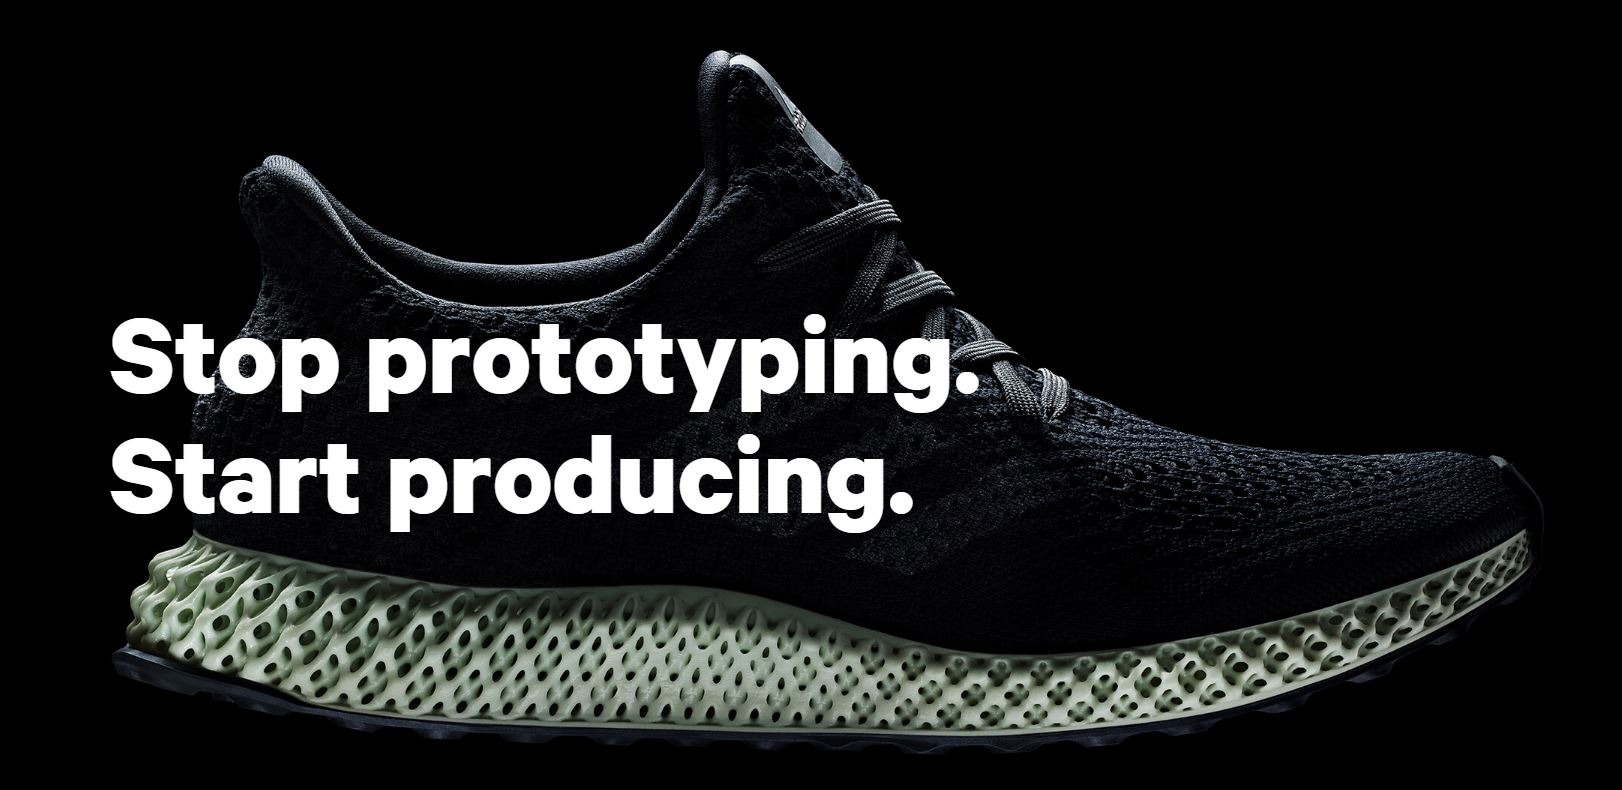 3Dprinted shoe FutureCraft 4D